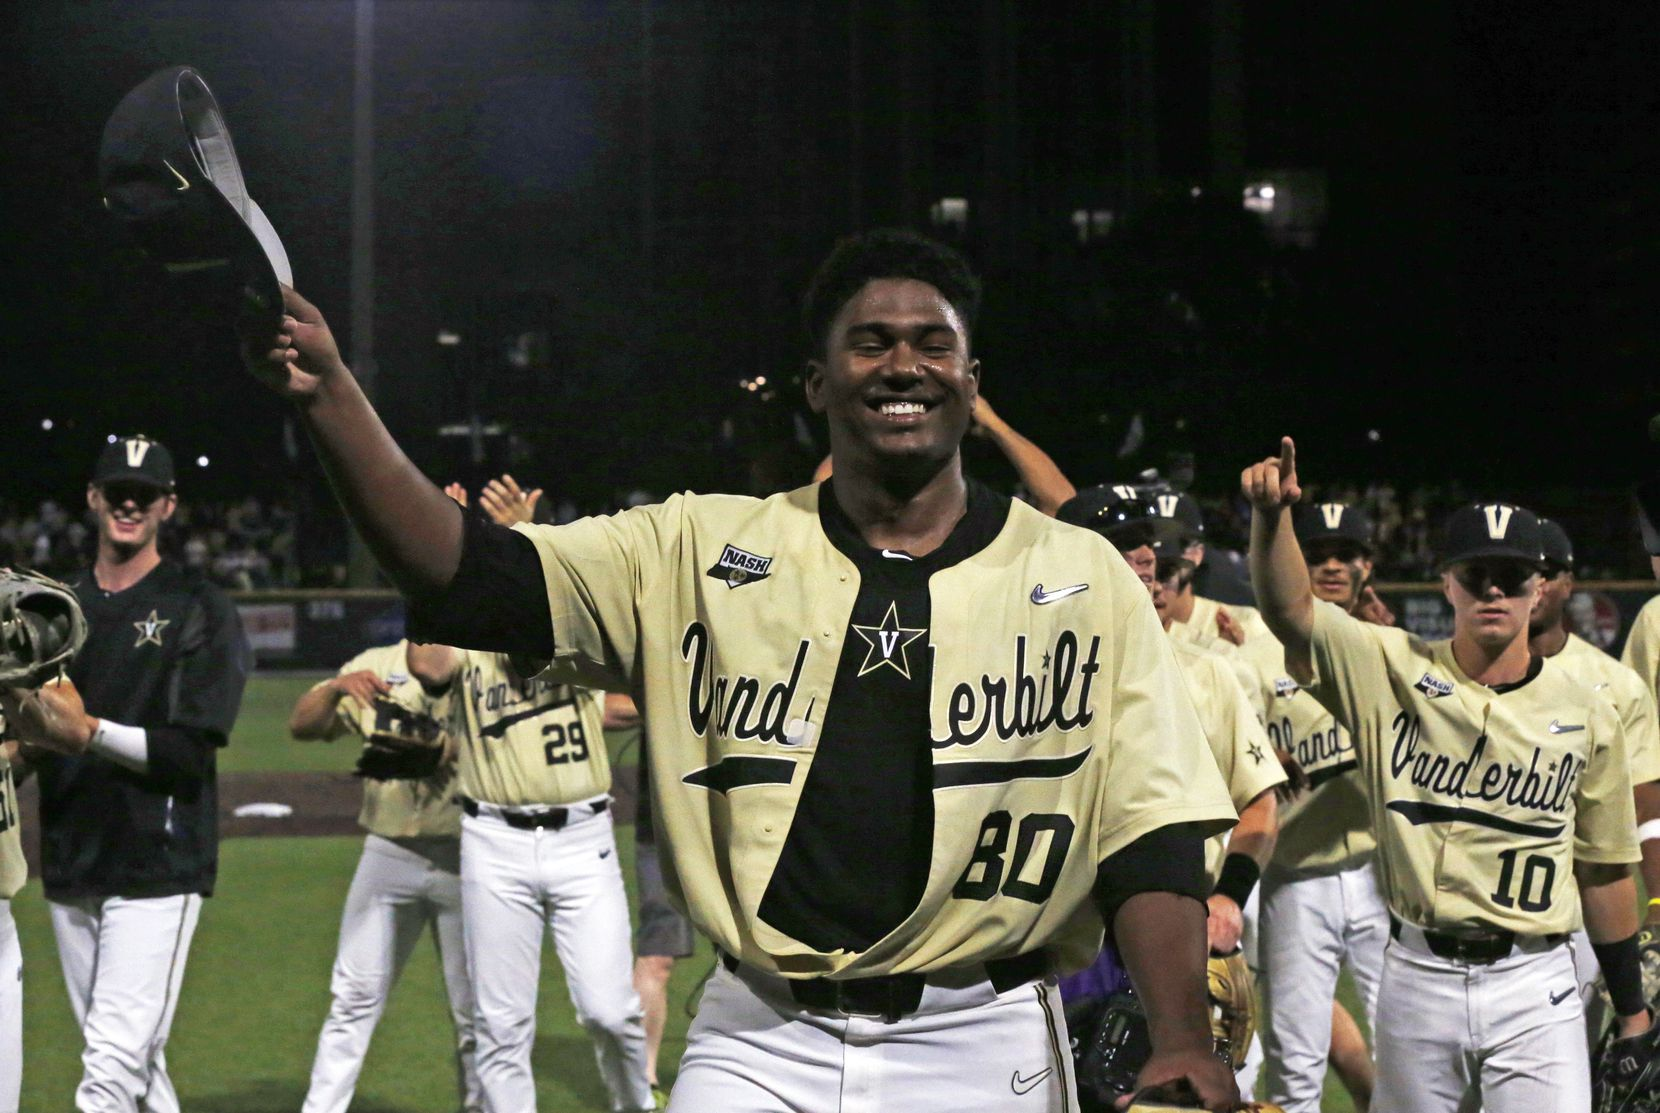 Vanderbilt's Kumar Rocker (80) tips his hat to fans after the team's NCAA college baseball tournament super regional game against Duke on Saturday, June 8, 2019, in Nashville, Tenn. Rocker threw a no-hitter in Vanderbilt's 3-0 victory. (AP Photo/Wade Payne)